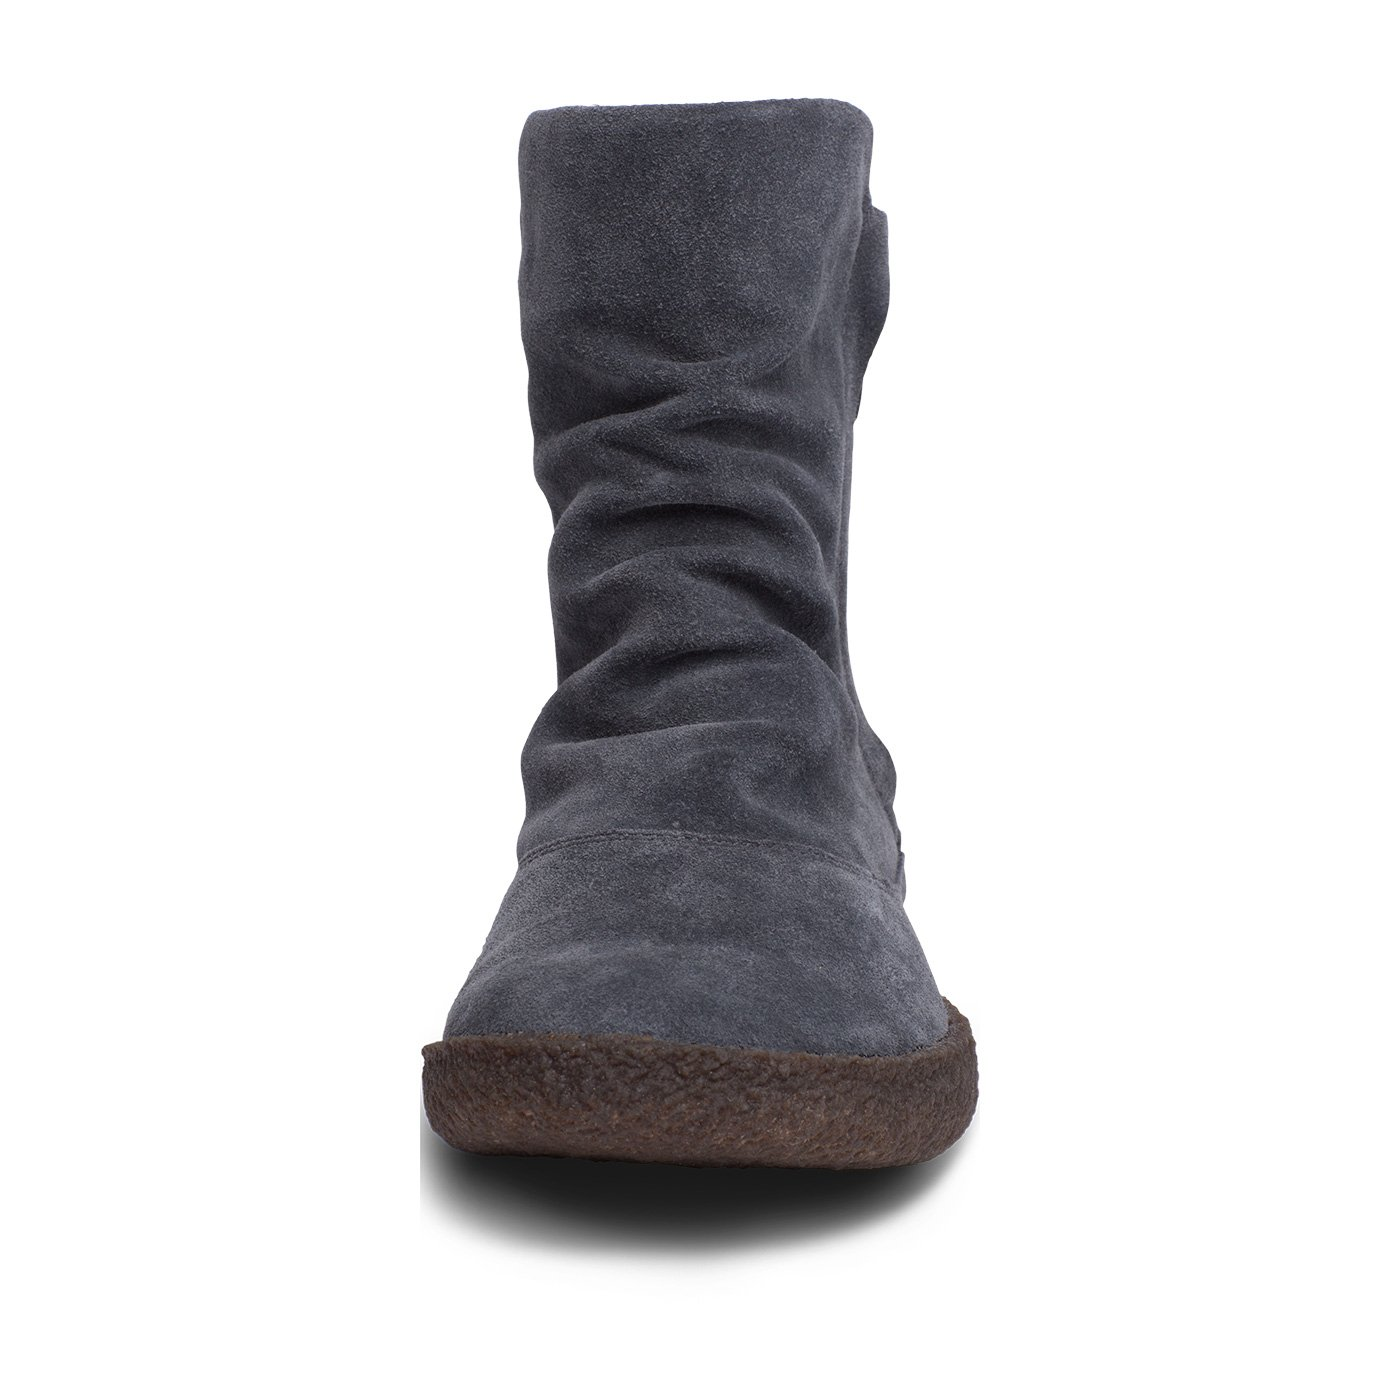 Womens Overcast BluPrint Idyllwild Slouch Boot Womens Suede Boots with BluPrint CLOUD IMPRINT Comfort Technology 7